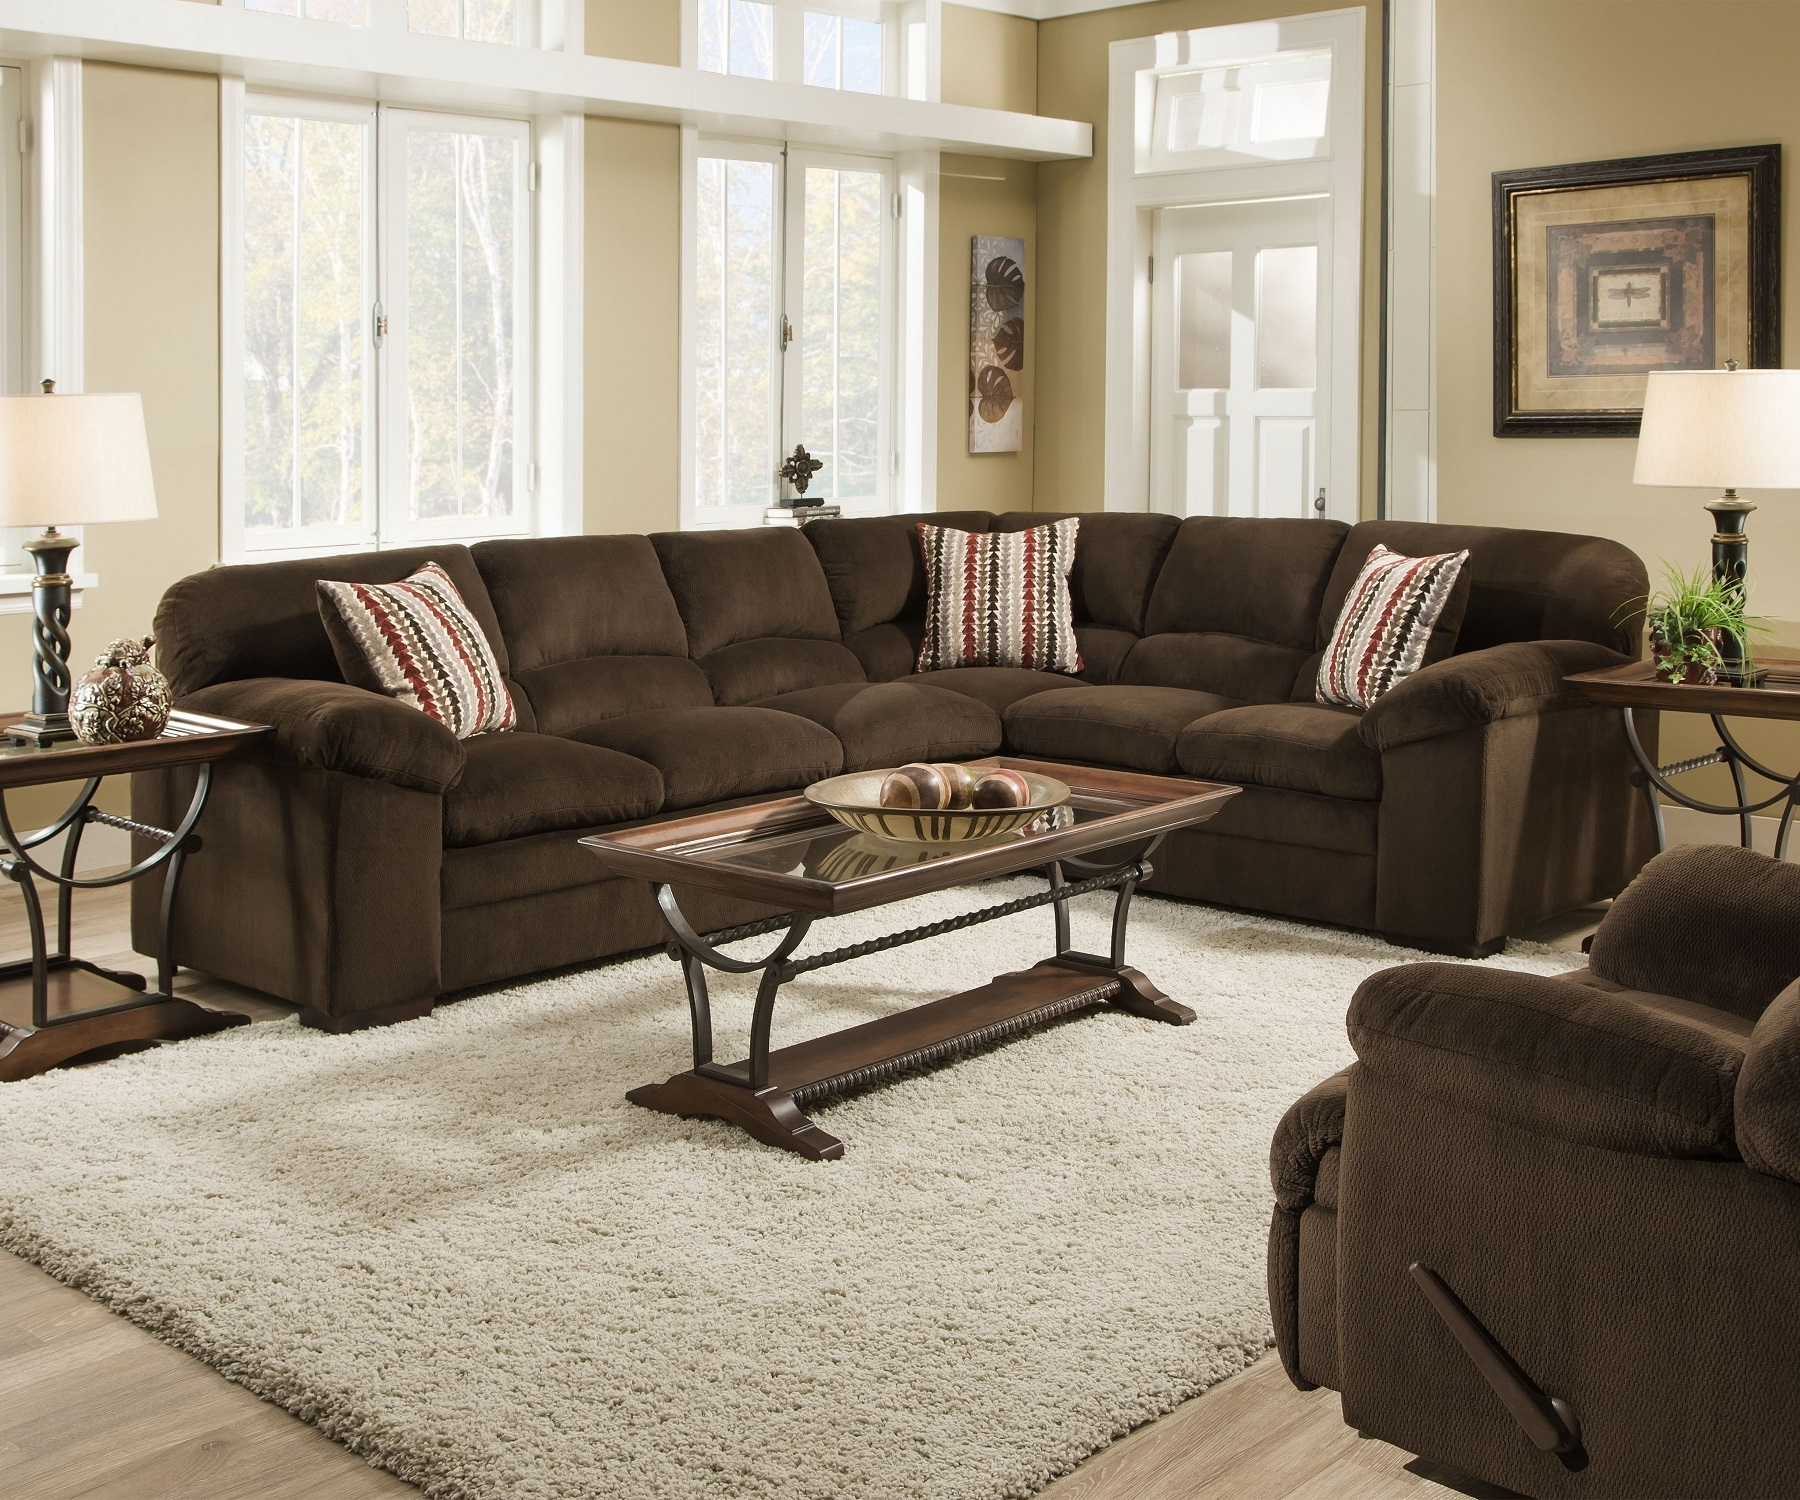 Widely Used Simmons Dover 8043 Chocolate Ultra Plush Soft Seating Made In The Usa With Regard To Simmons Sectional Sofas (View 4 of 20)